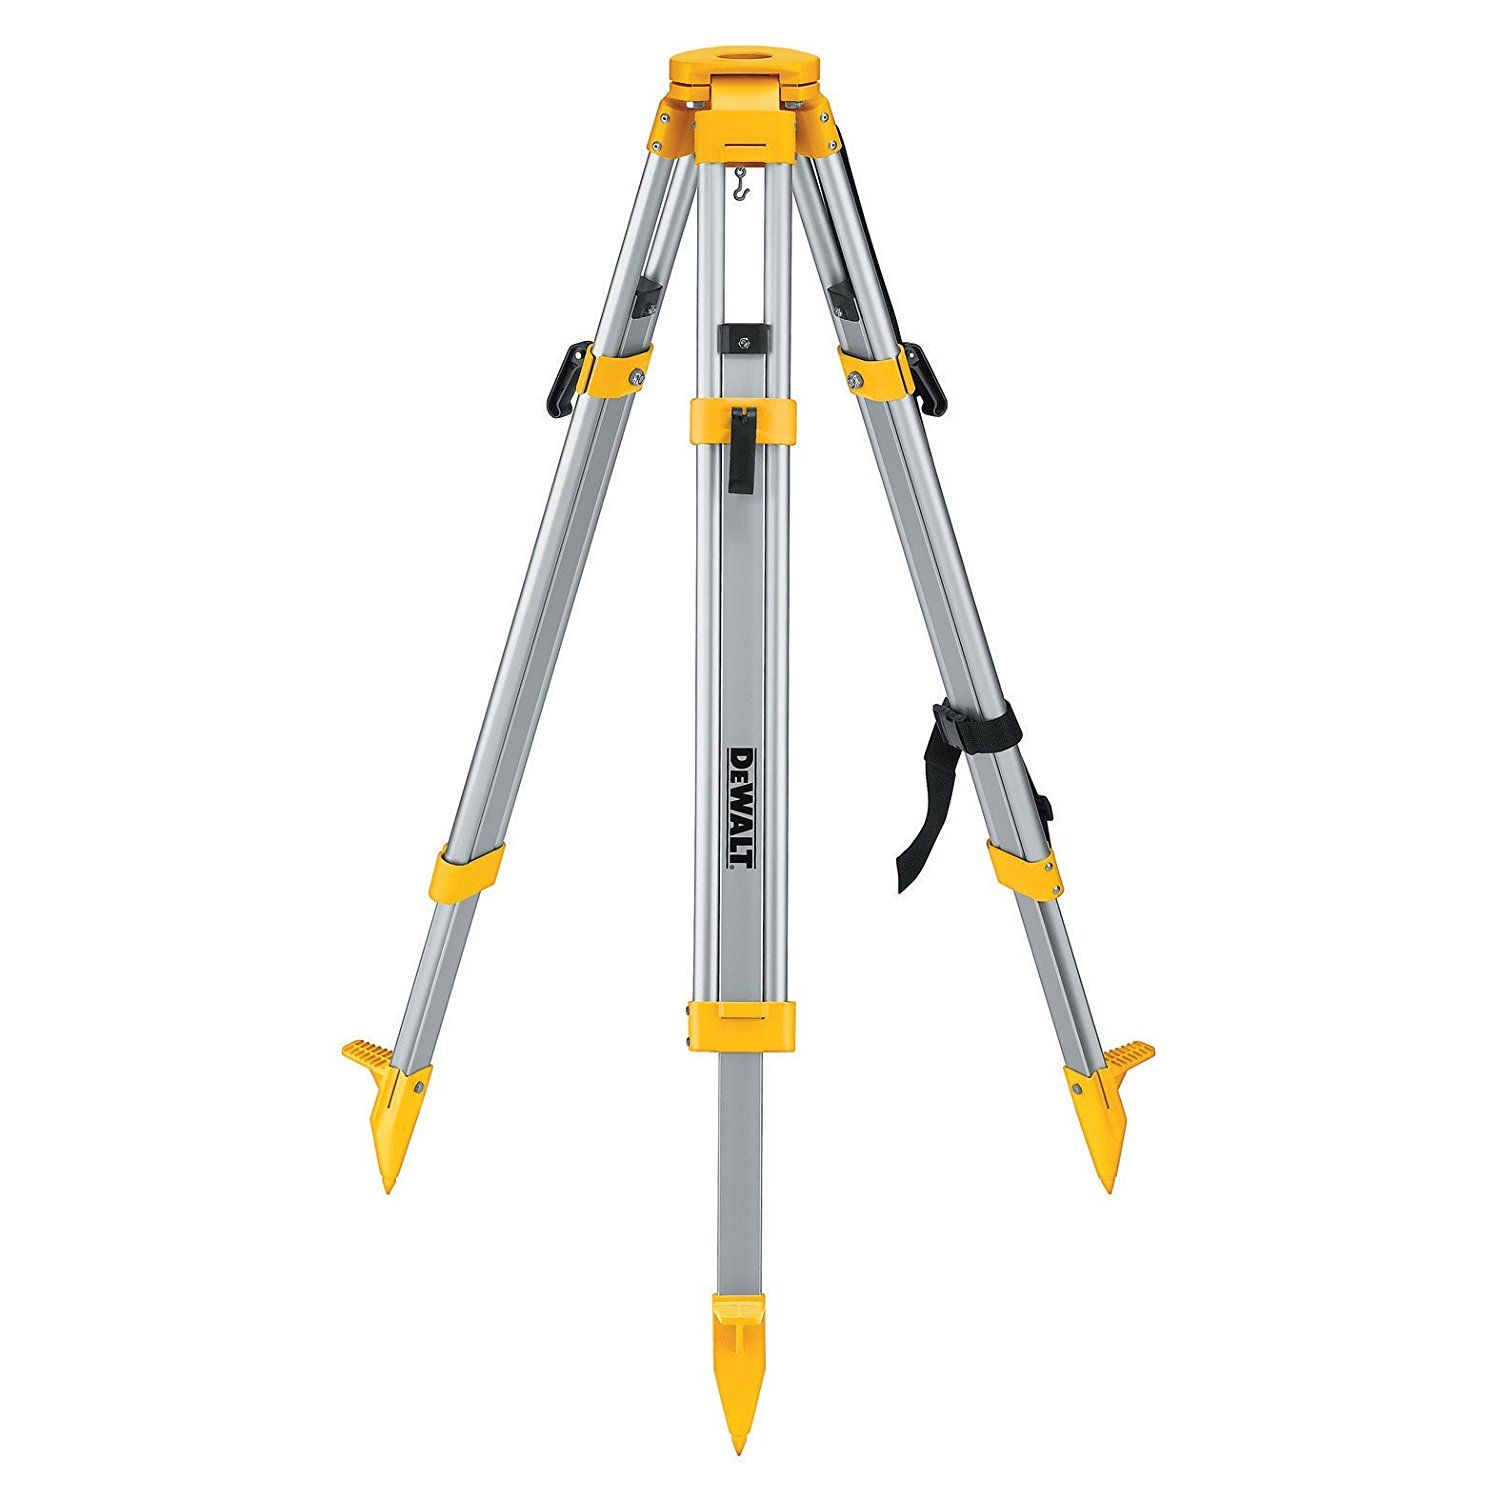 Best Laser Level Tripods Of 2020 Compare Top 6 Tripods Tripod